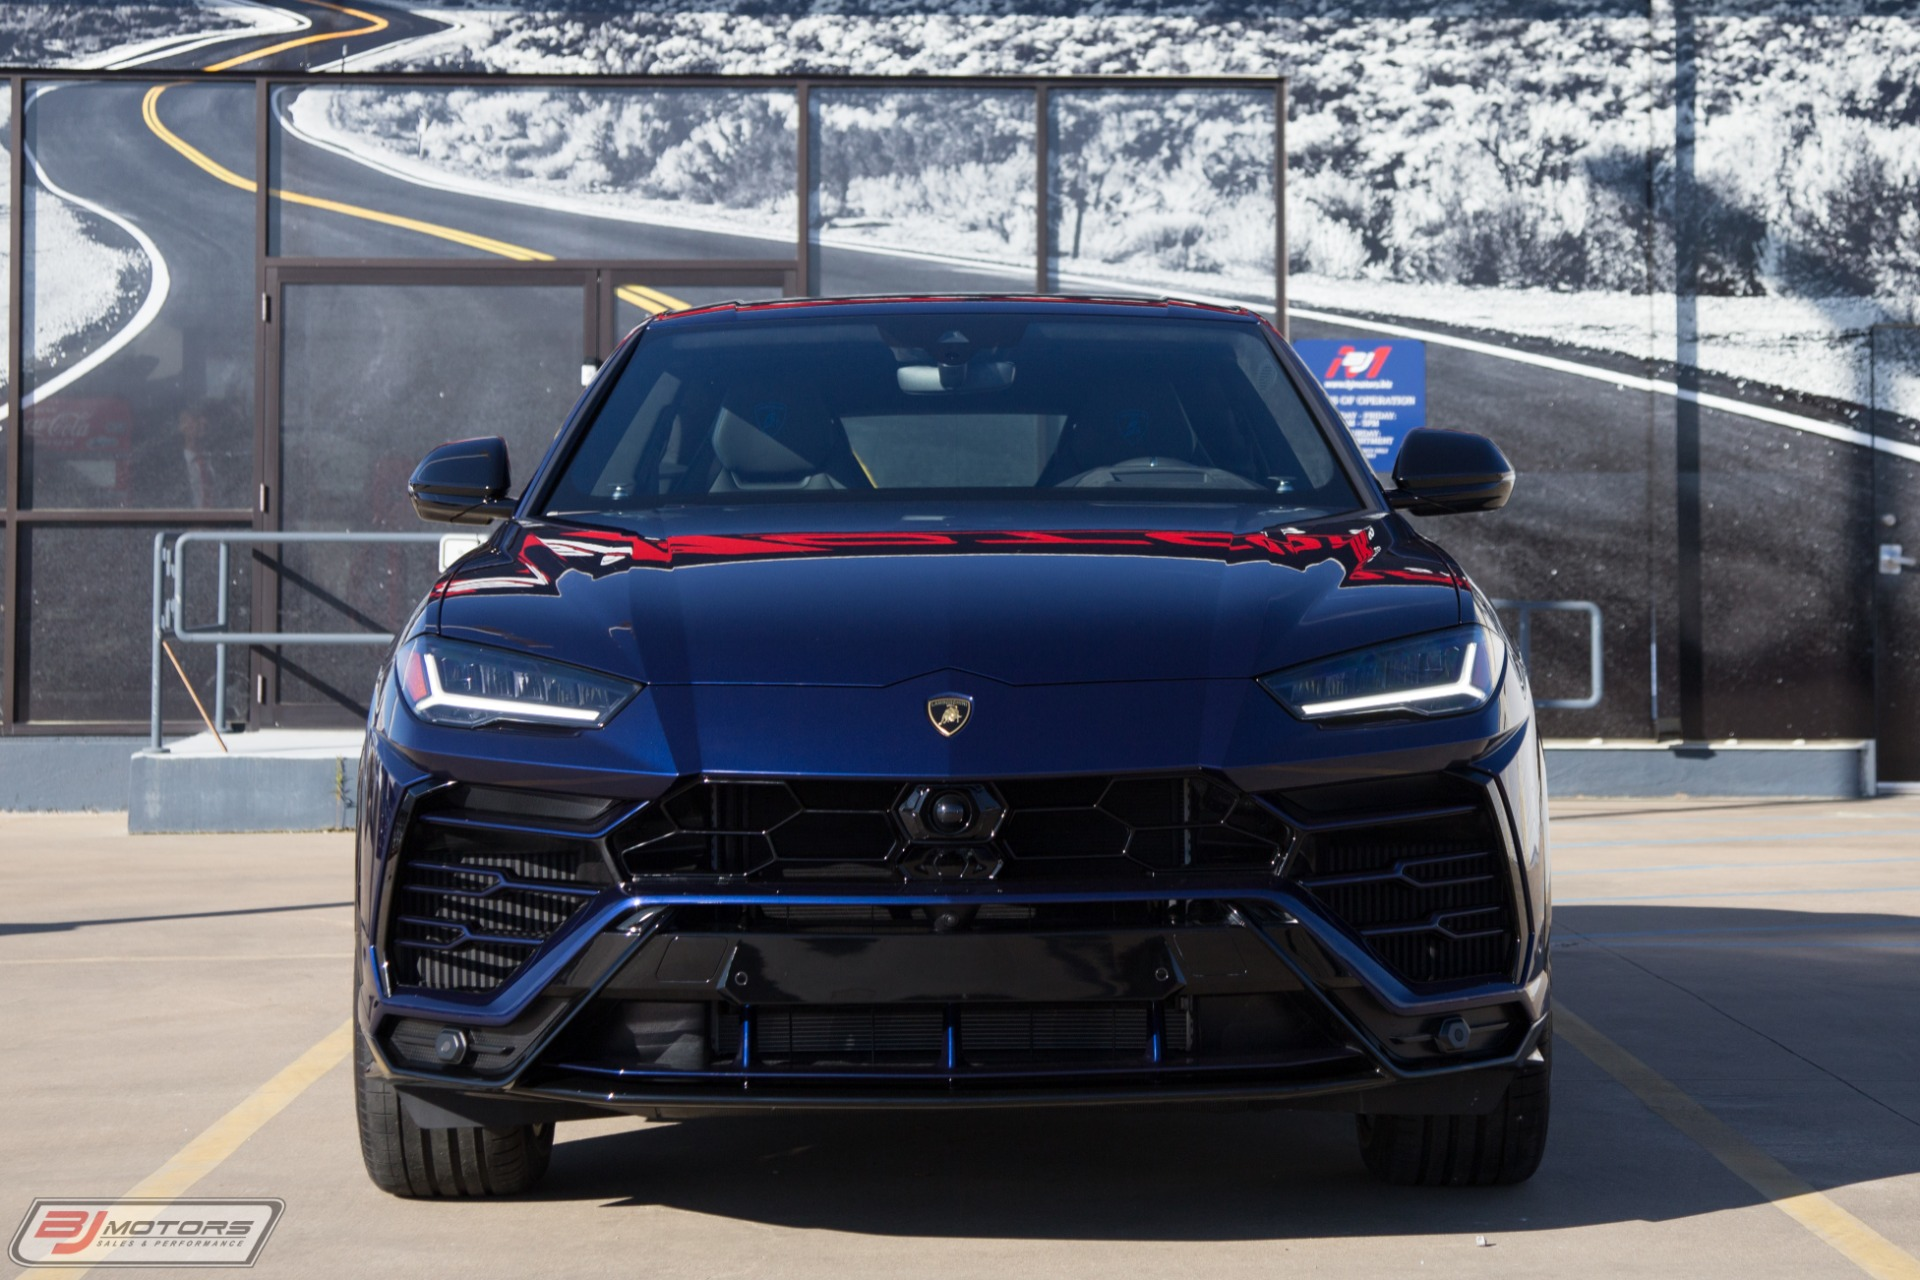 Used 2019 Lamborghini Urus For Sale ($249,995) | BJ Motors